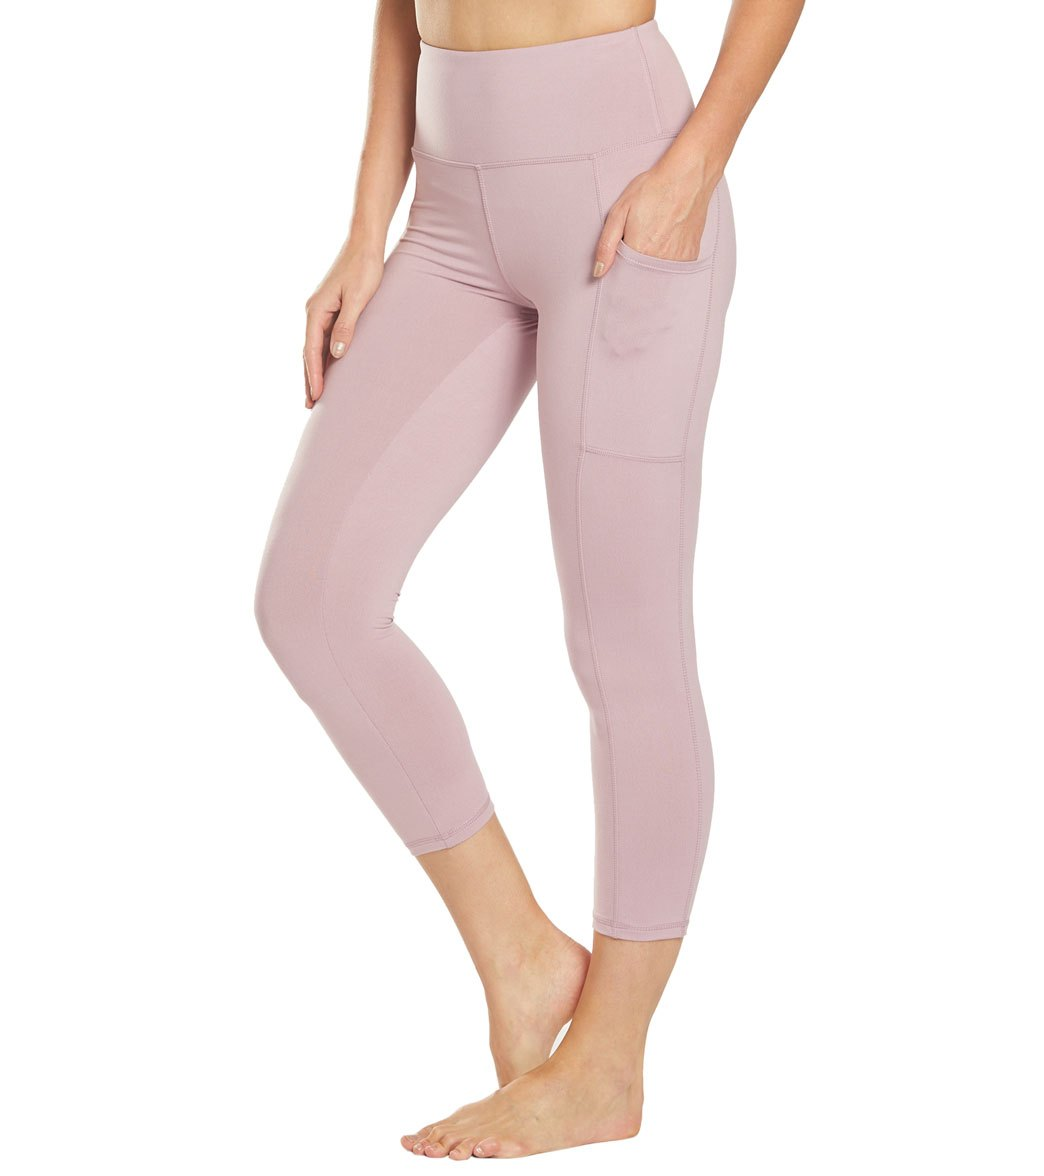 Balance Collection Eclipse Lux Yoga Capri Pants - Mauve Shadows Cotton